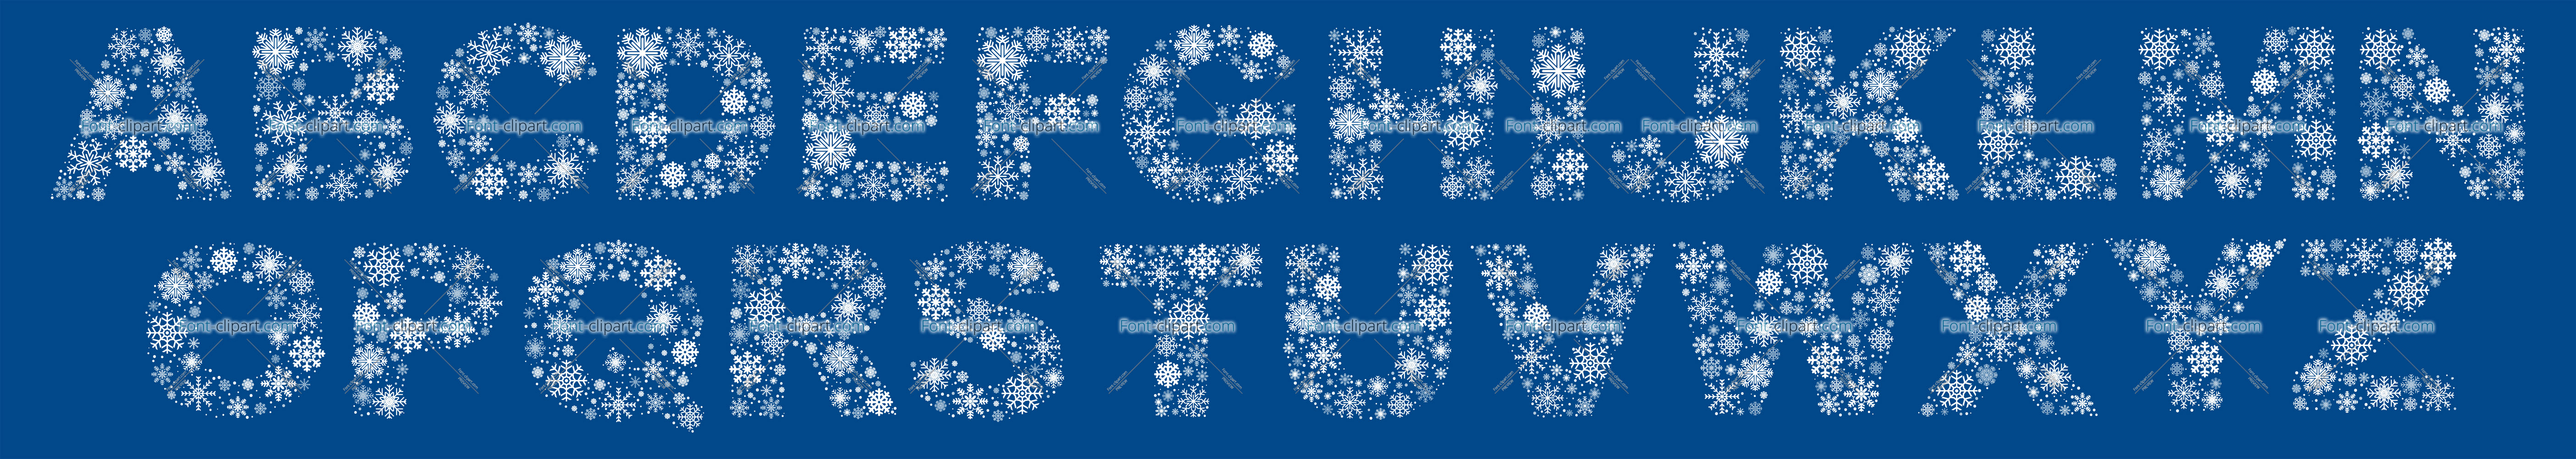 Letter clipart snowflake SnowFlakes Uppercase A letter »